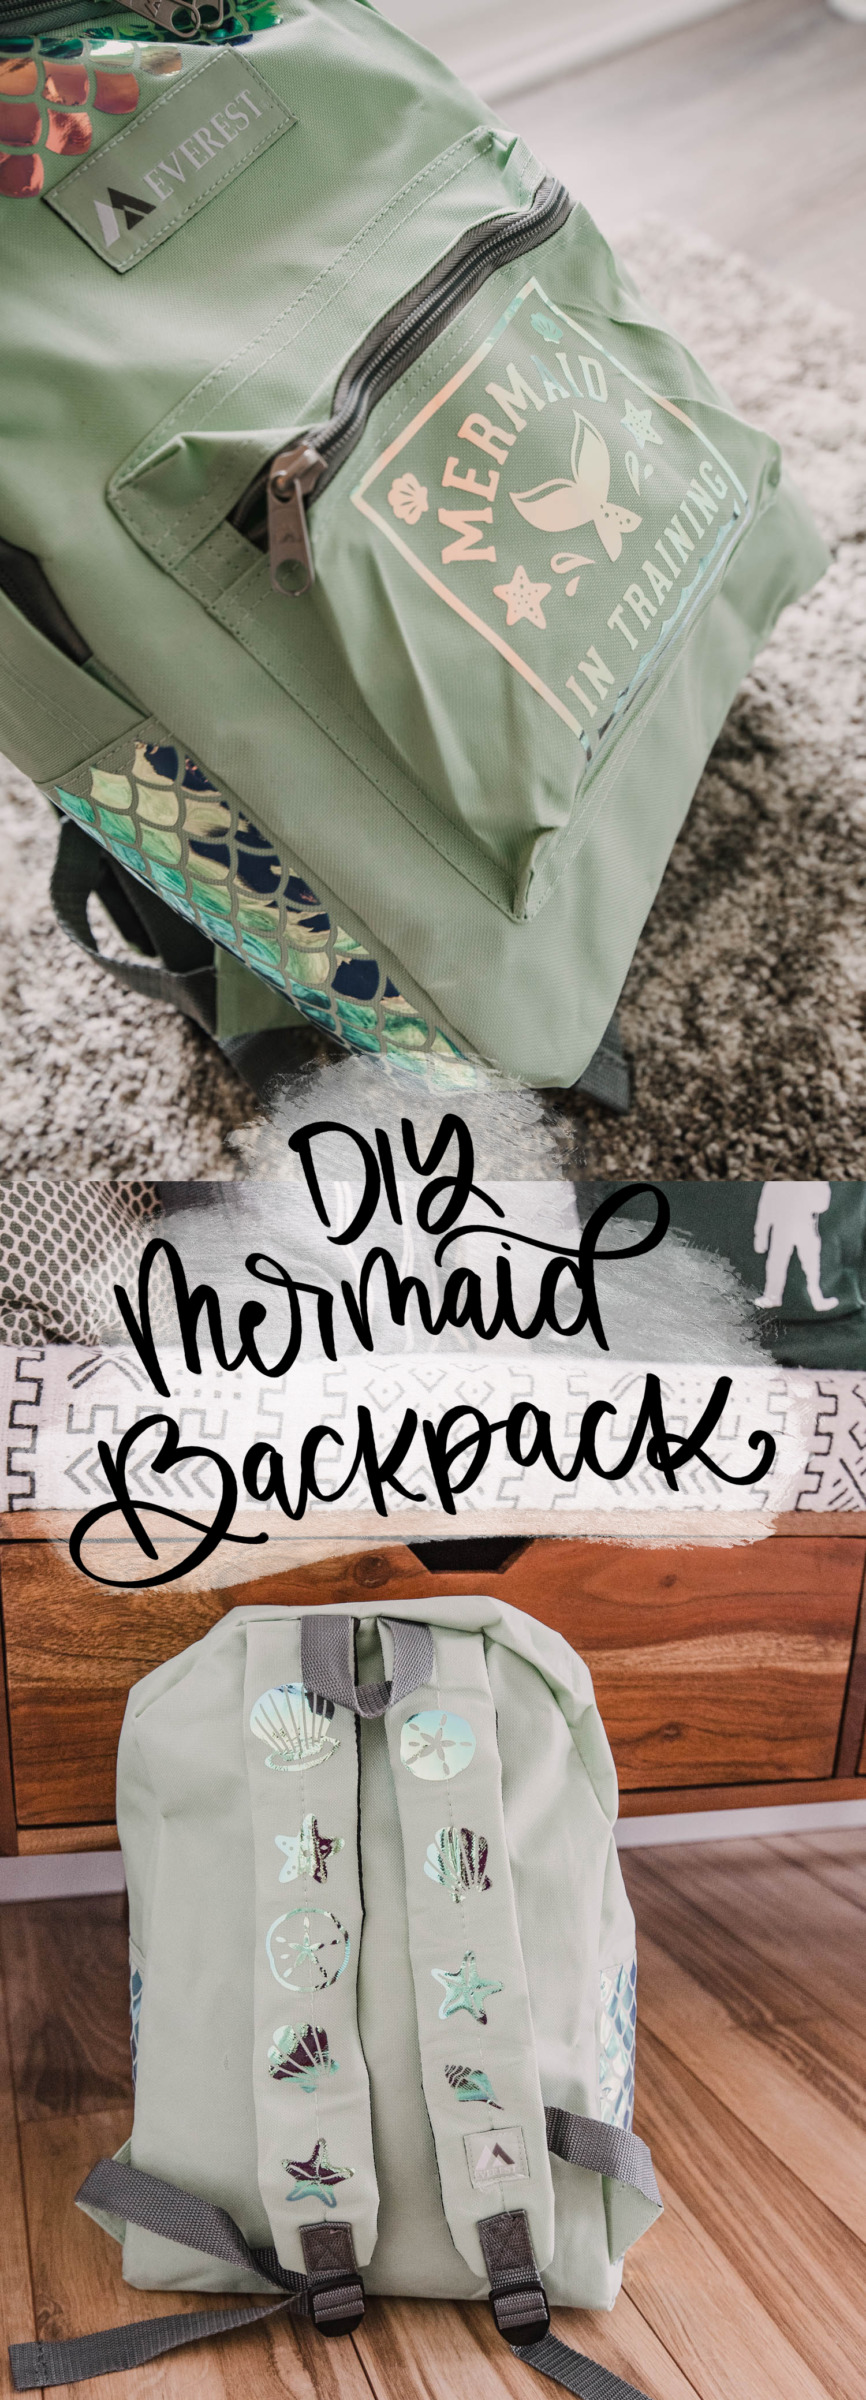 DIY Mermaid Backpack using Holographic Iron On